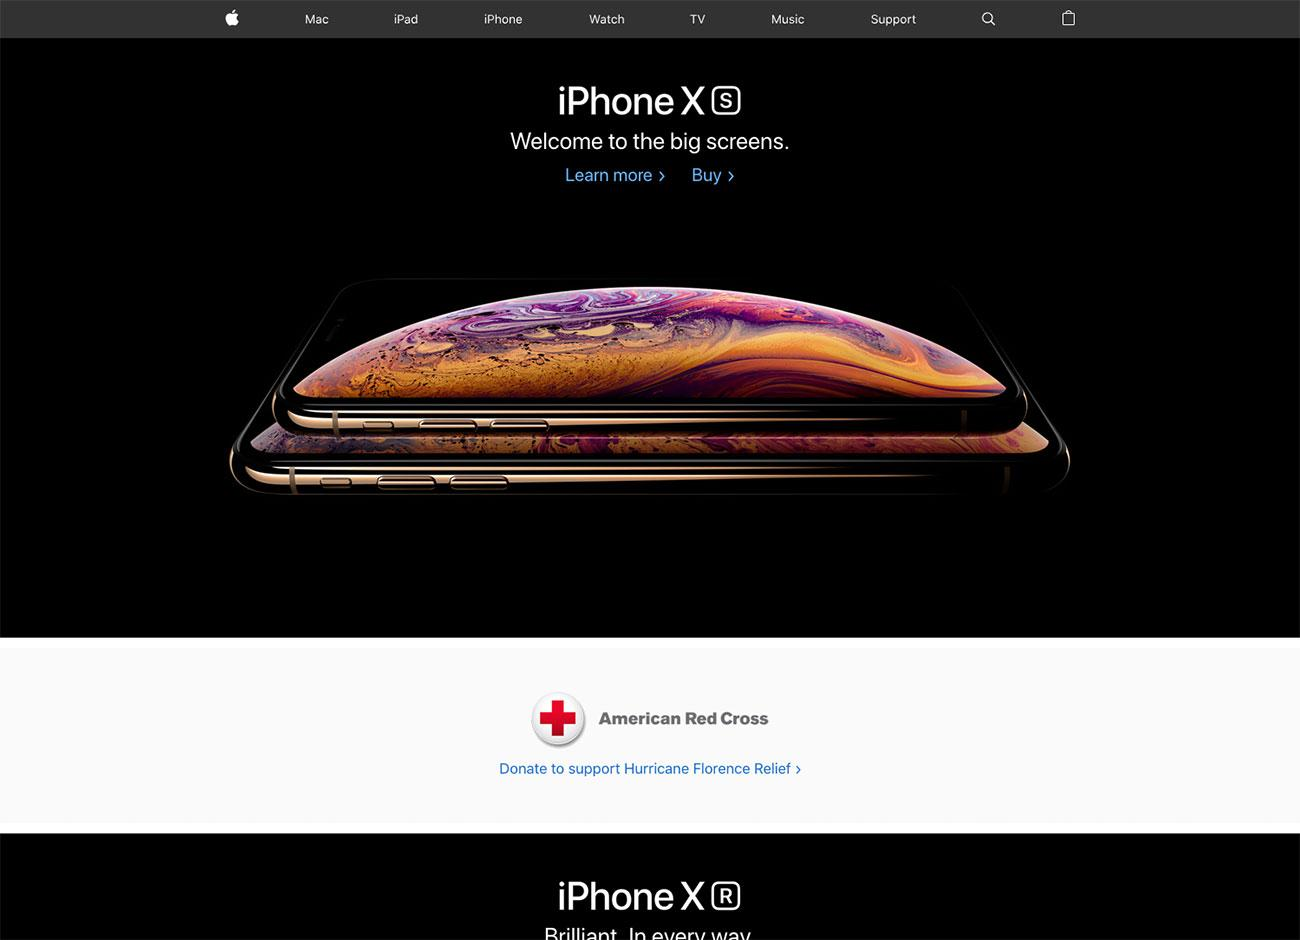 Apple's landing page centres around beautifully shot product photography